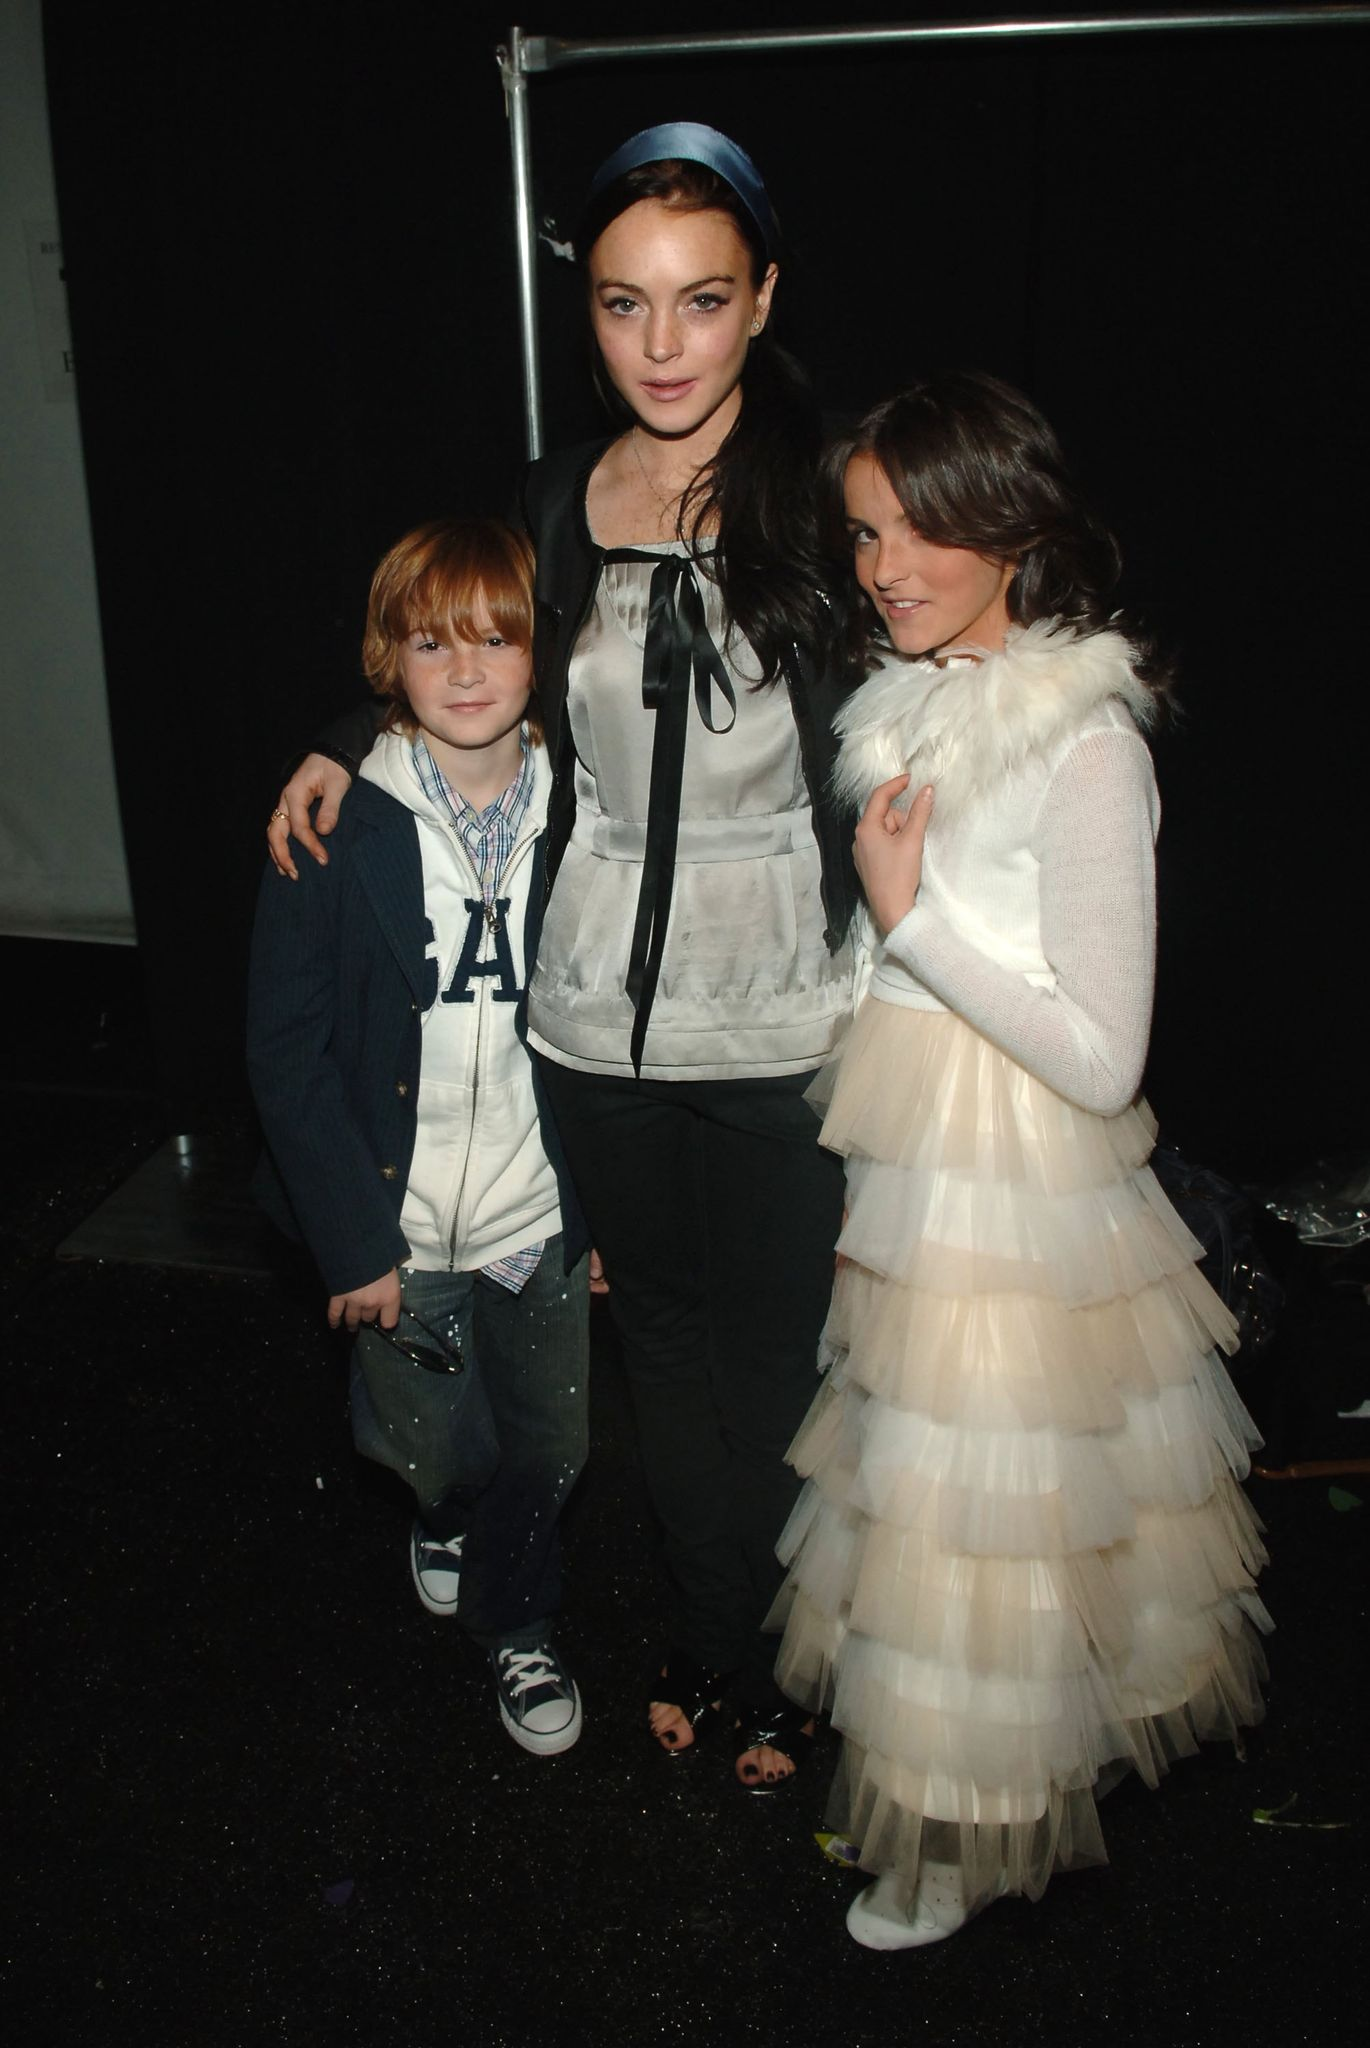 Lindsay Lohan,  sister Aliana, and brother Dakota at the Child Magazine Fall 2006 fashion in 2006 in New York City | Source: Getty Images